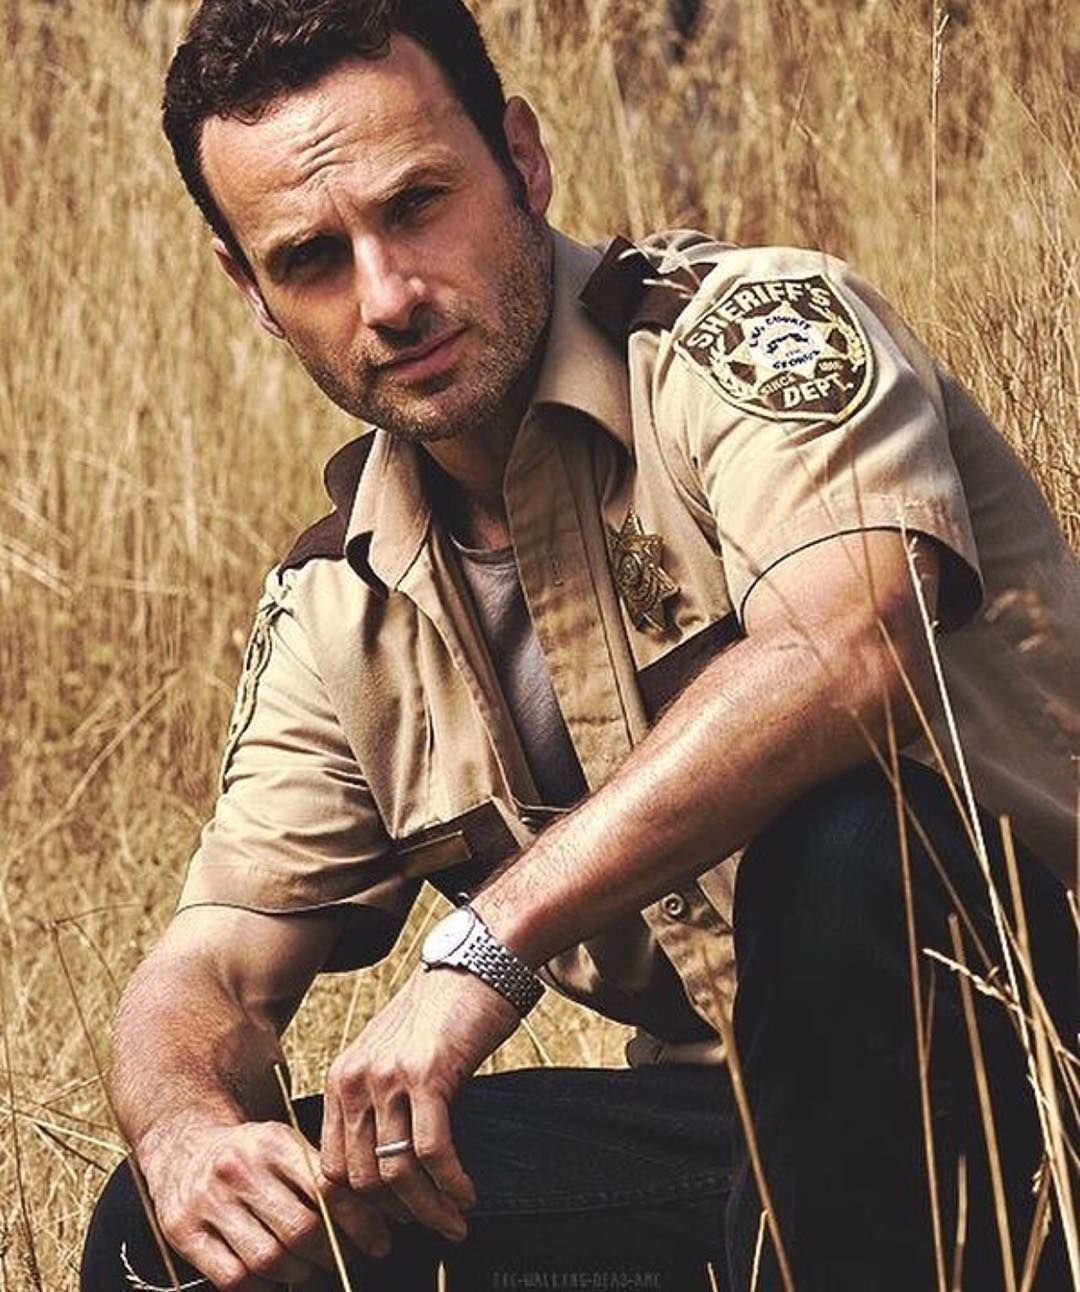 Sheriff Rick Grimes #TheWalkingDead #officerfriendly #rickgrimes #andrewlincoln #season1 #throwback #like4like #follow4follow #twd by thewalkingdead_dailythangs